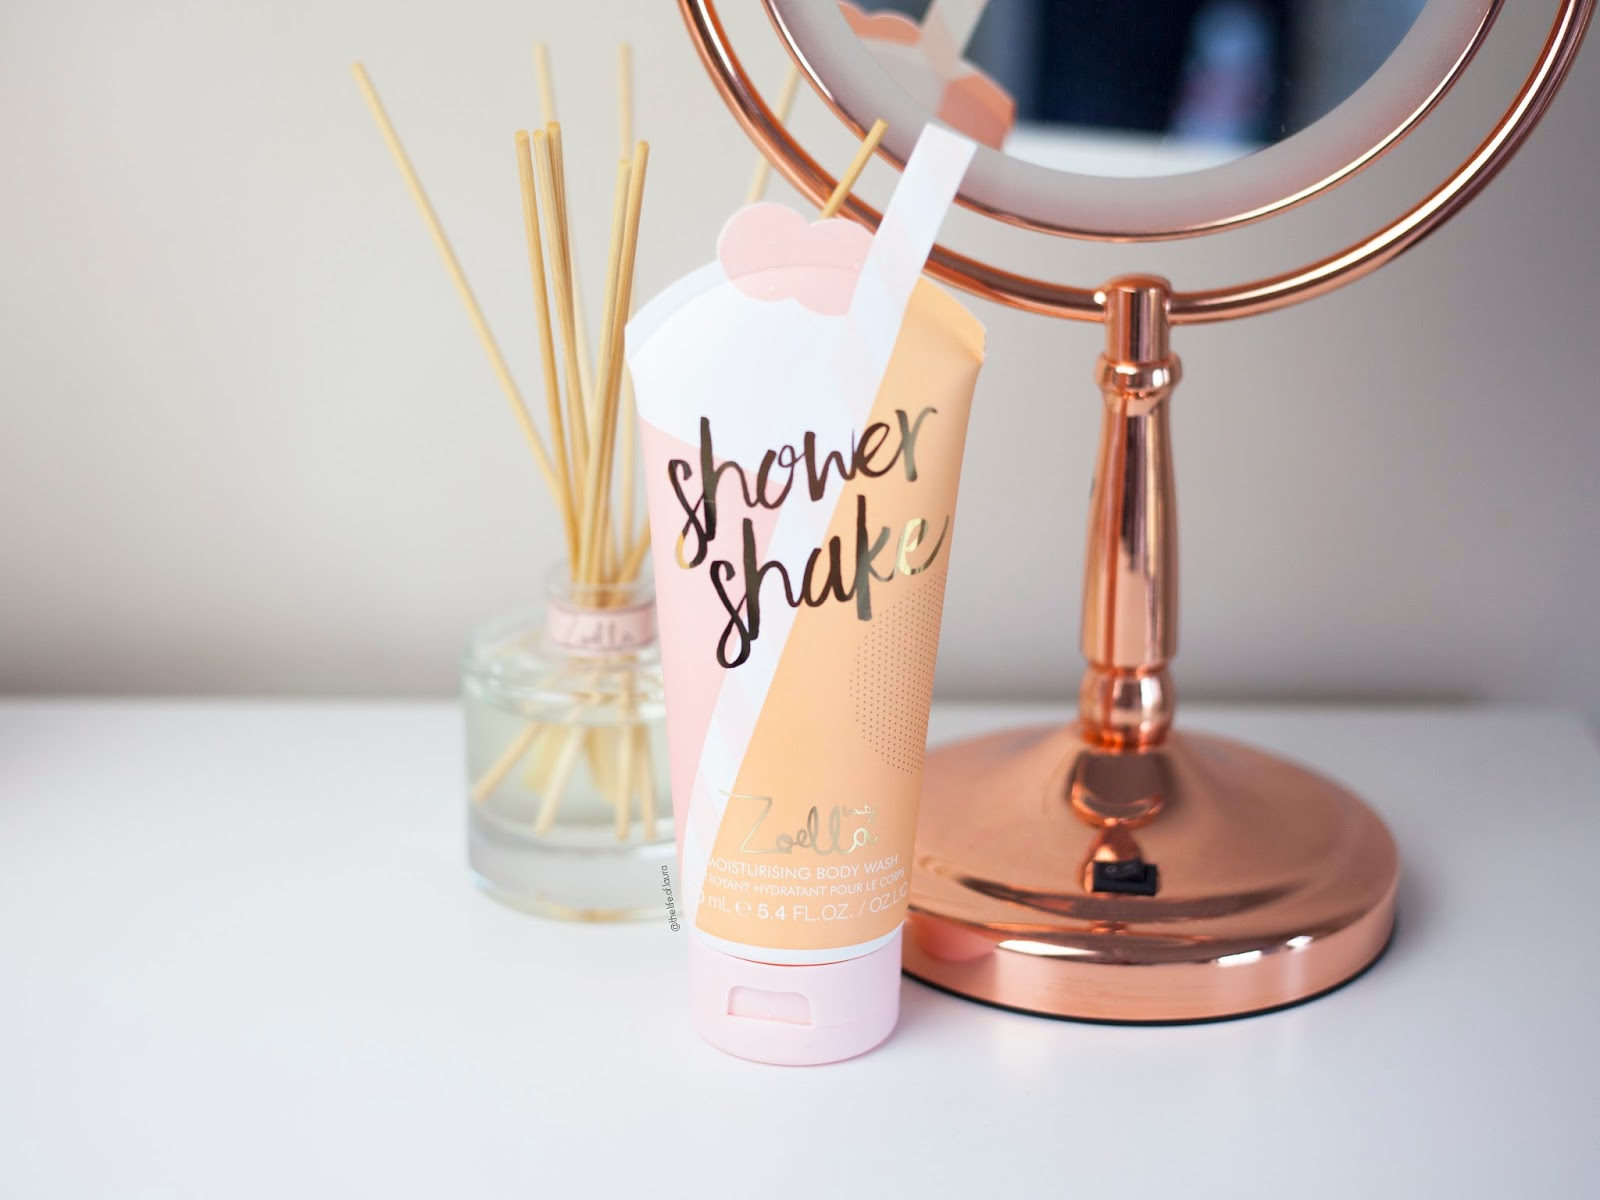 Zoella Jelly and Gelato Shower Shake